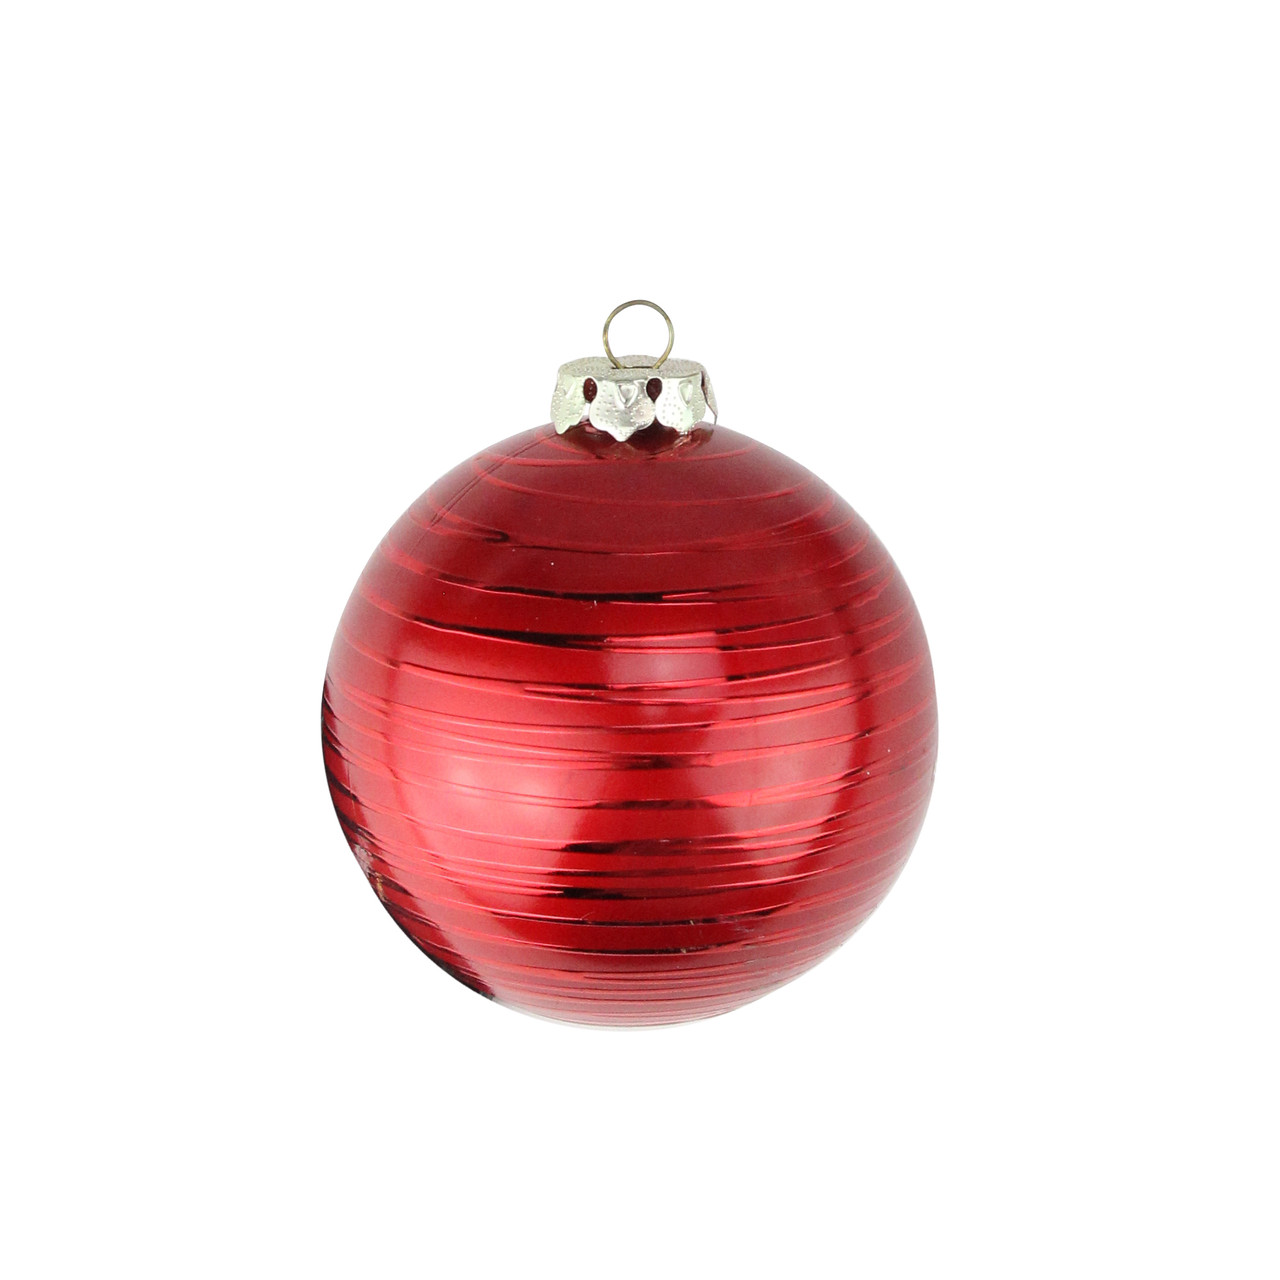 Red Christmas Ball Ornaments.2ct Matte Red Drizzled Line Shatterproof Christmas Ball Ornaments 3 25 80mm 30889480